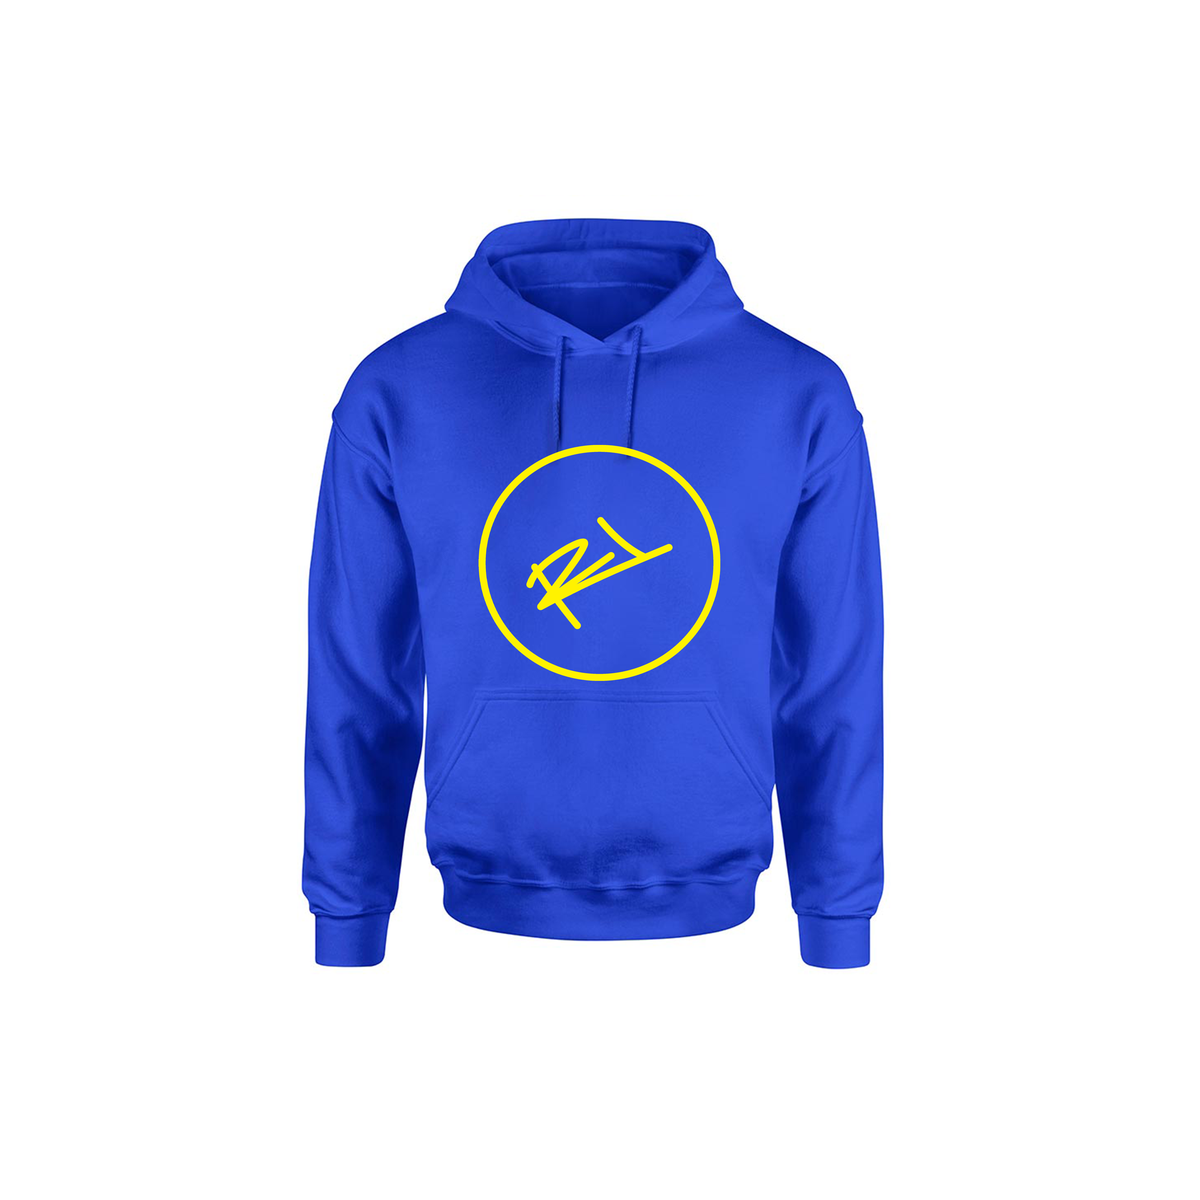 Image of ROYAL BLUE & YELLOW ReL LOGO TOWN COLLECTION HOODIE